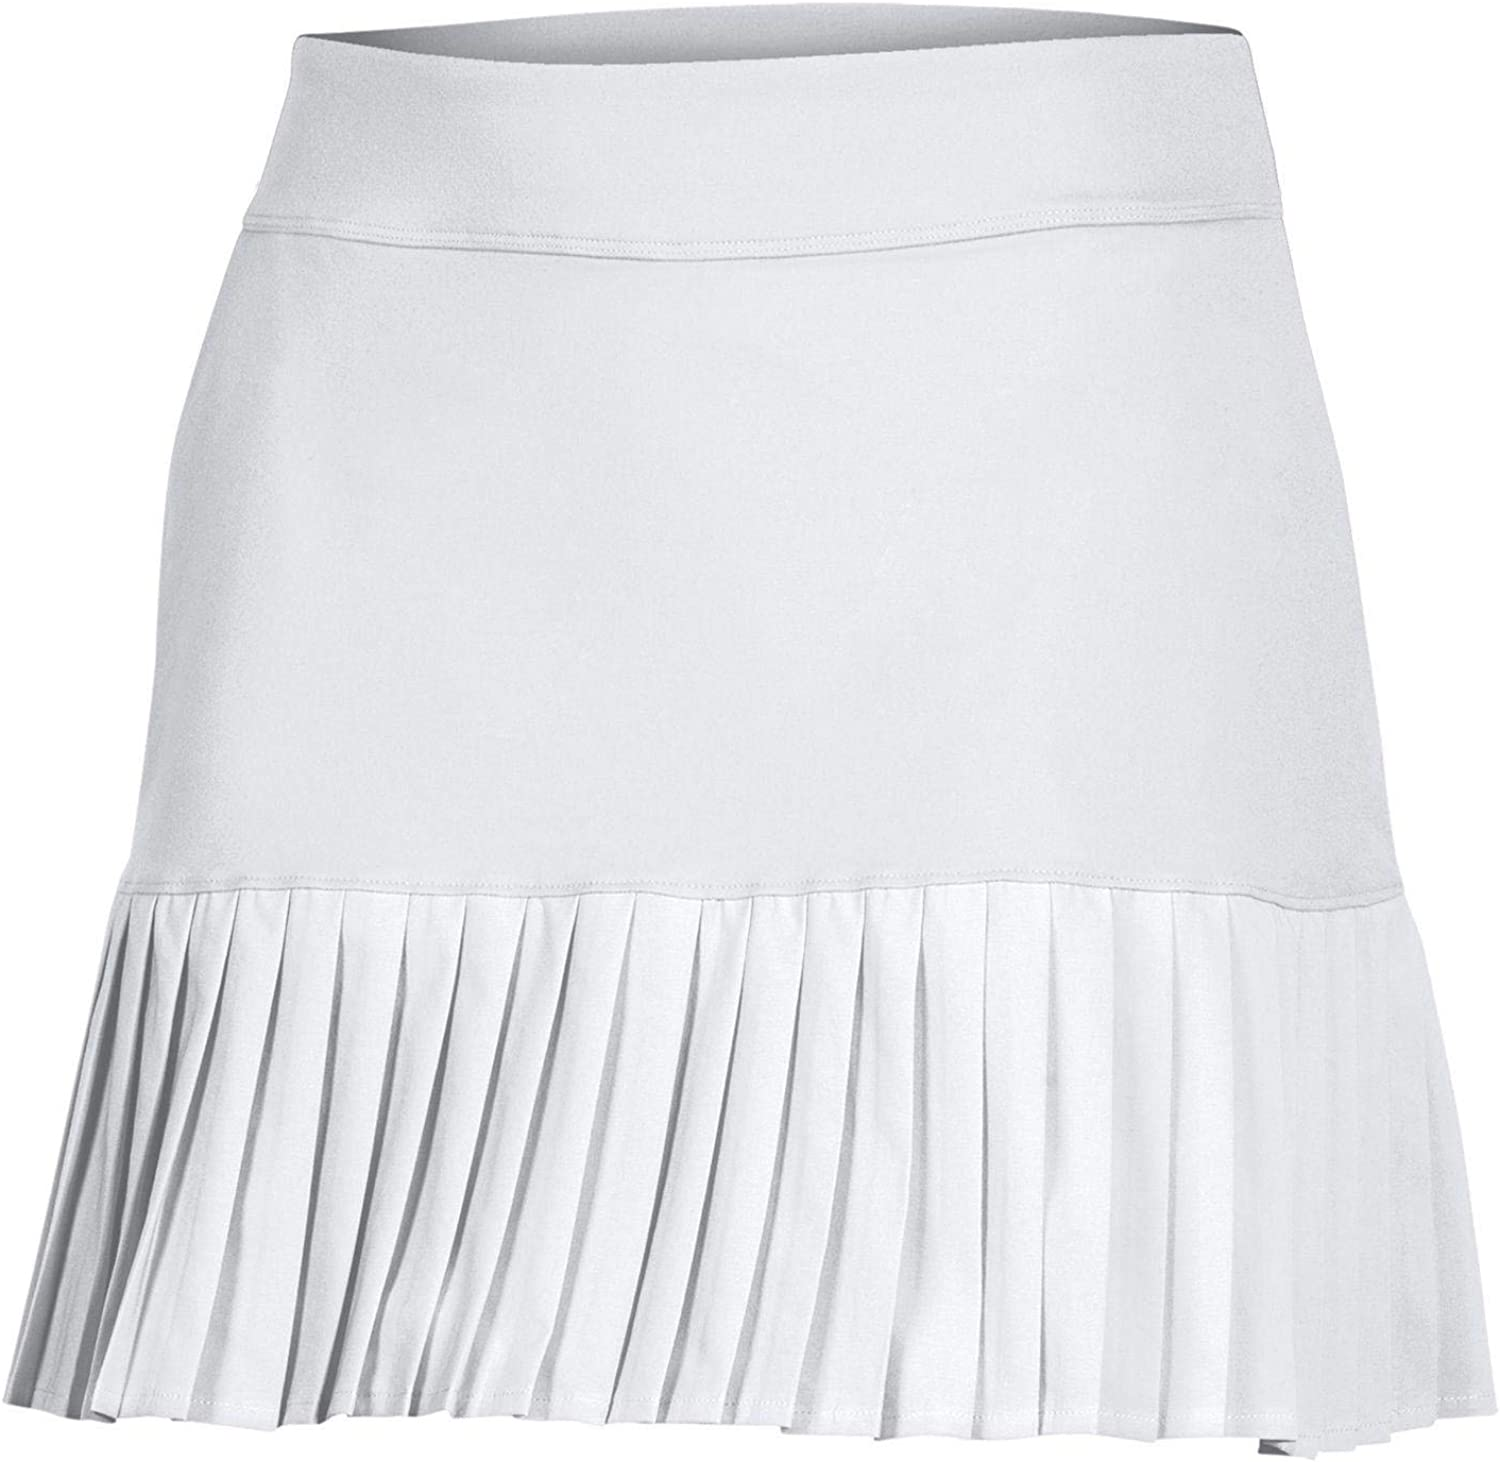 Under Armour New Women's 2021 Tuck - Save money Pleated Choose Skort Free shipping / New Golf C